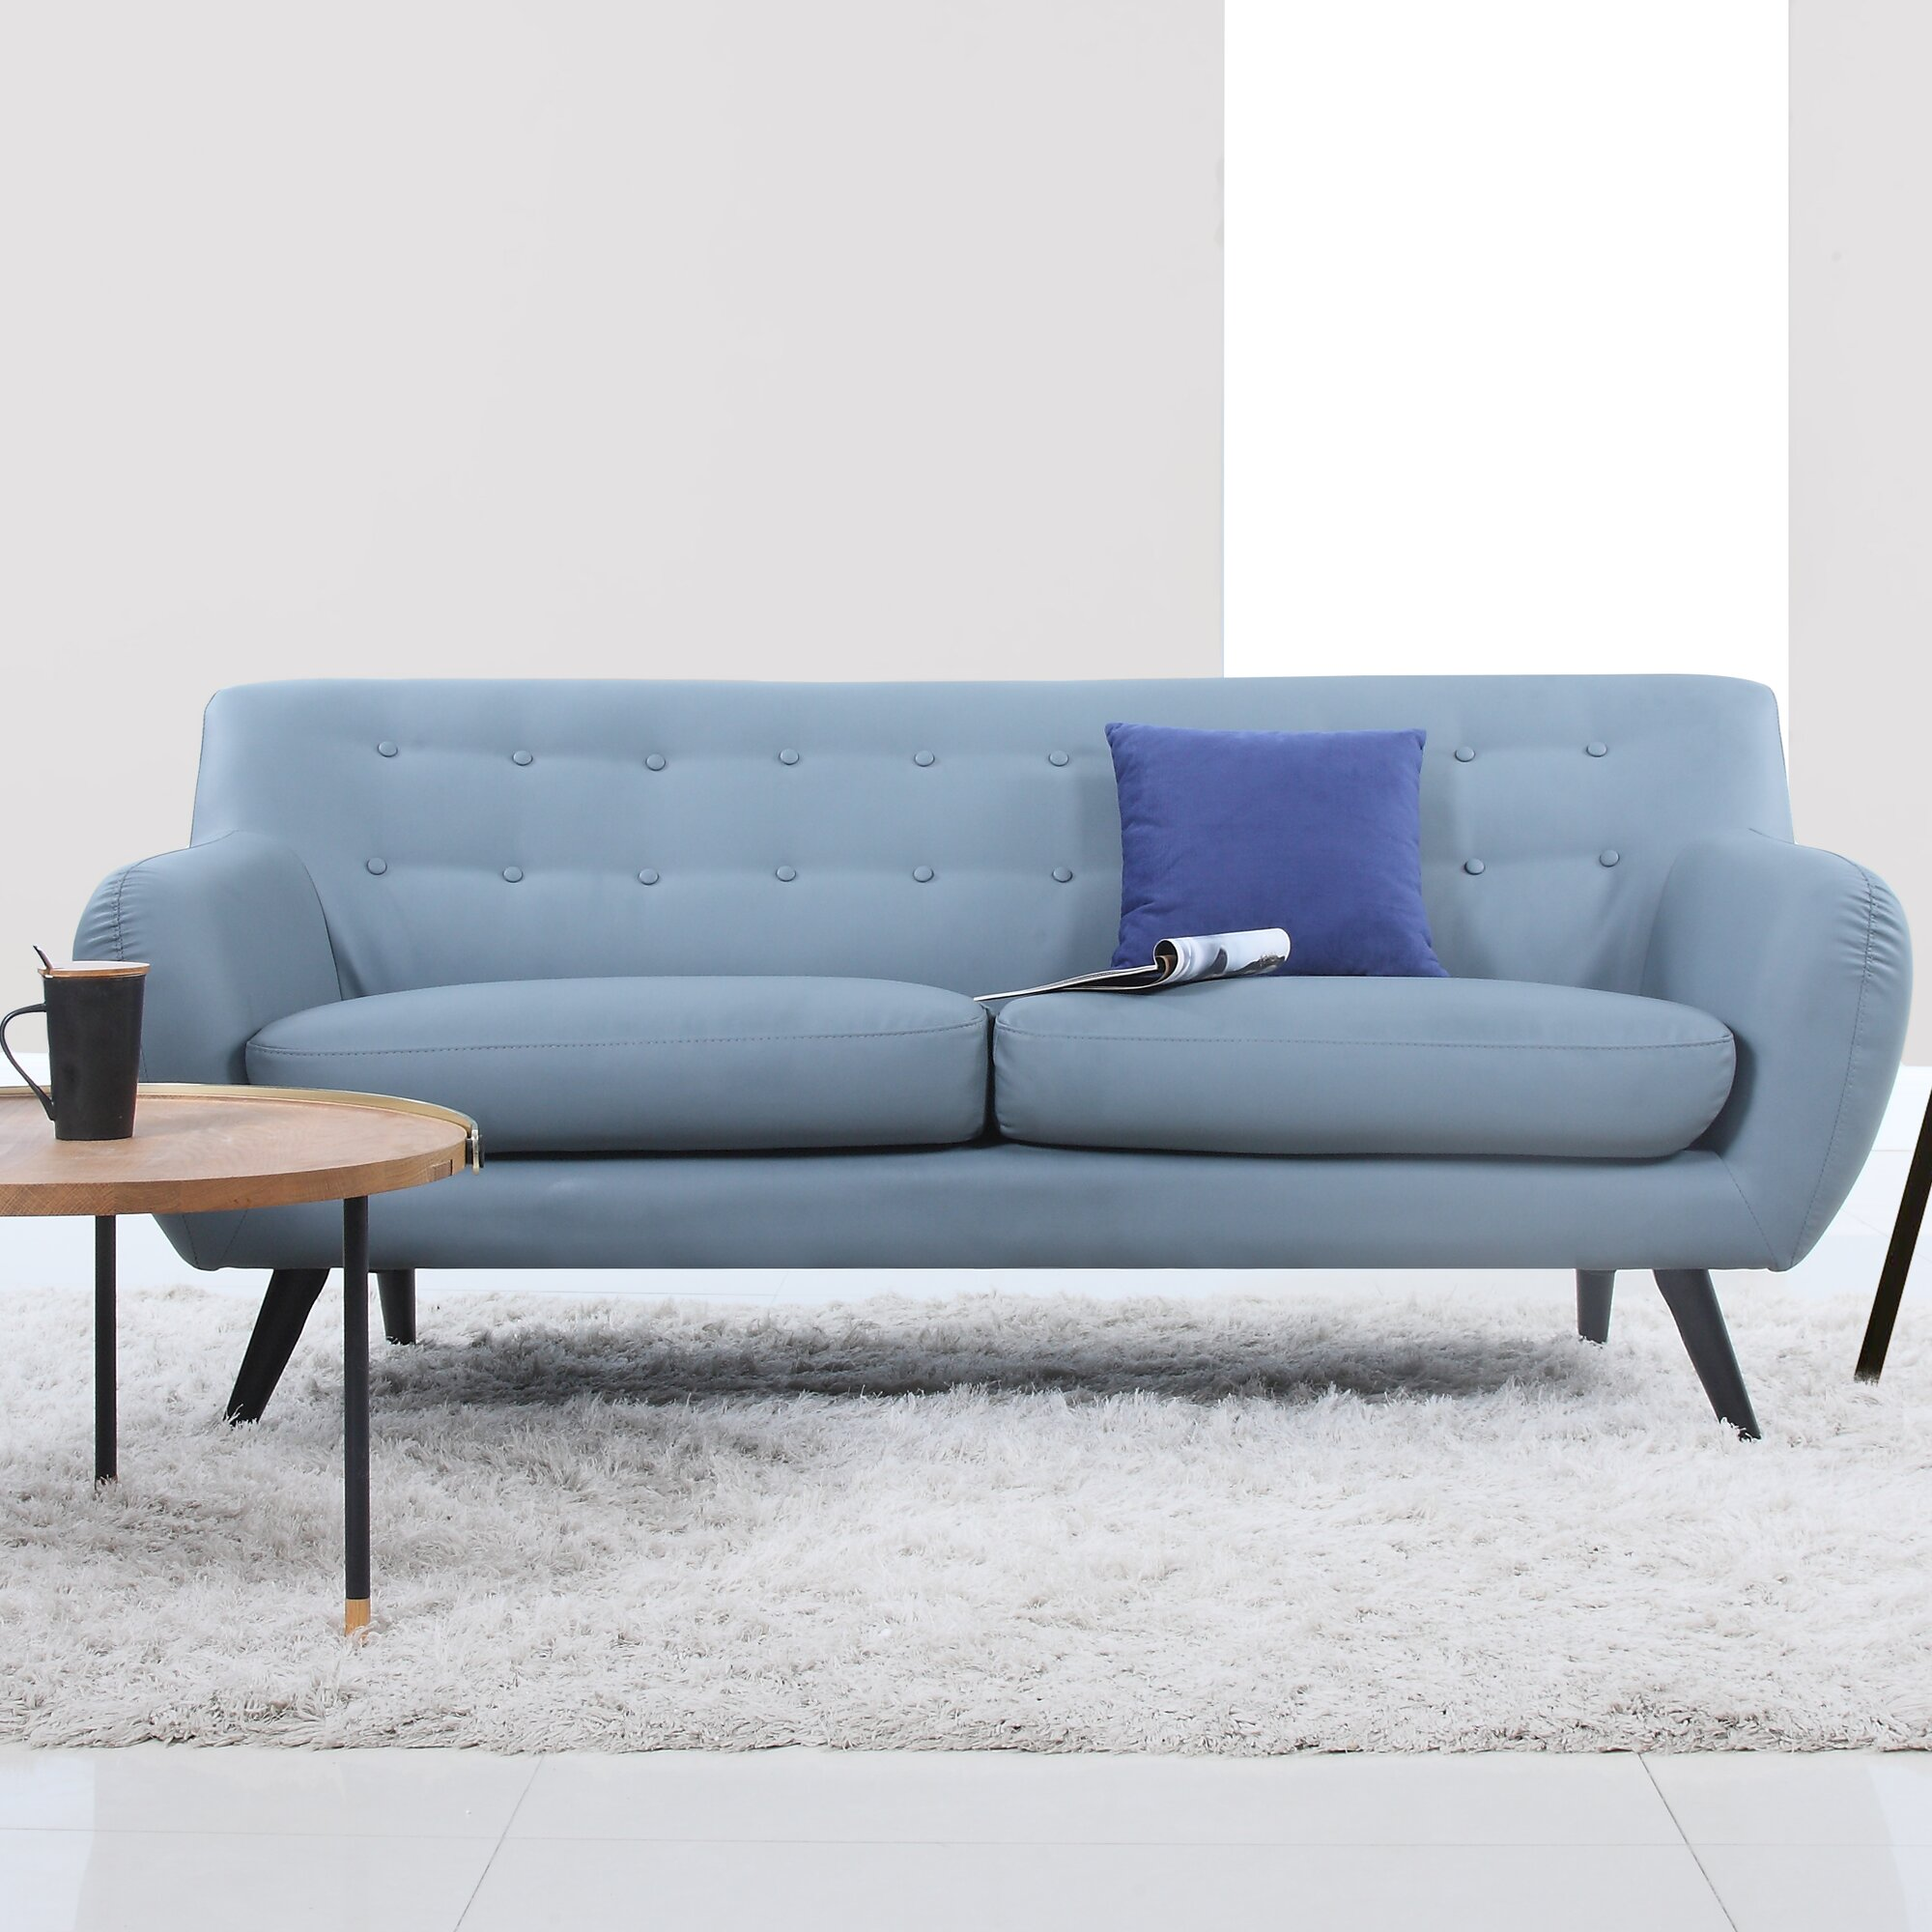 Mid Century Modern Sofas: Madison Home USA Mid Century Modern Tufted Sofa & Reviews